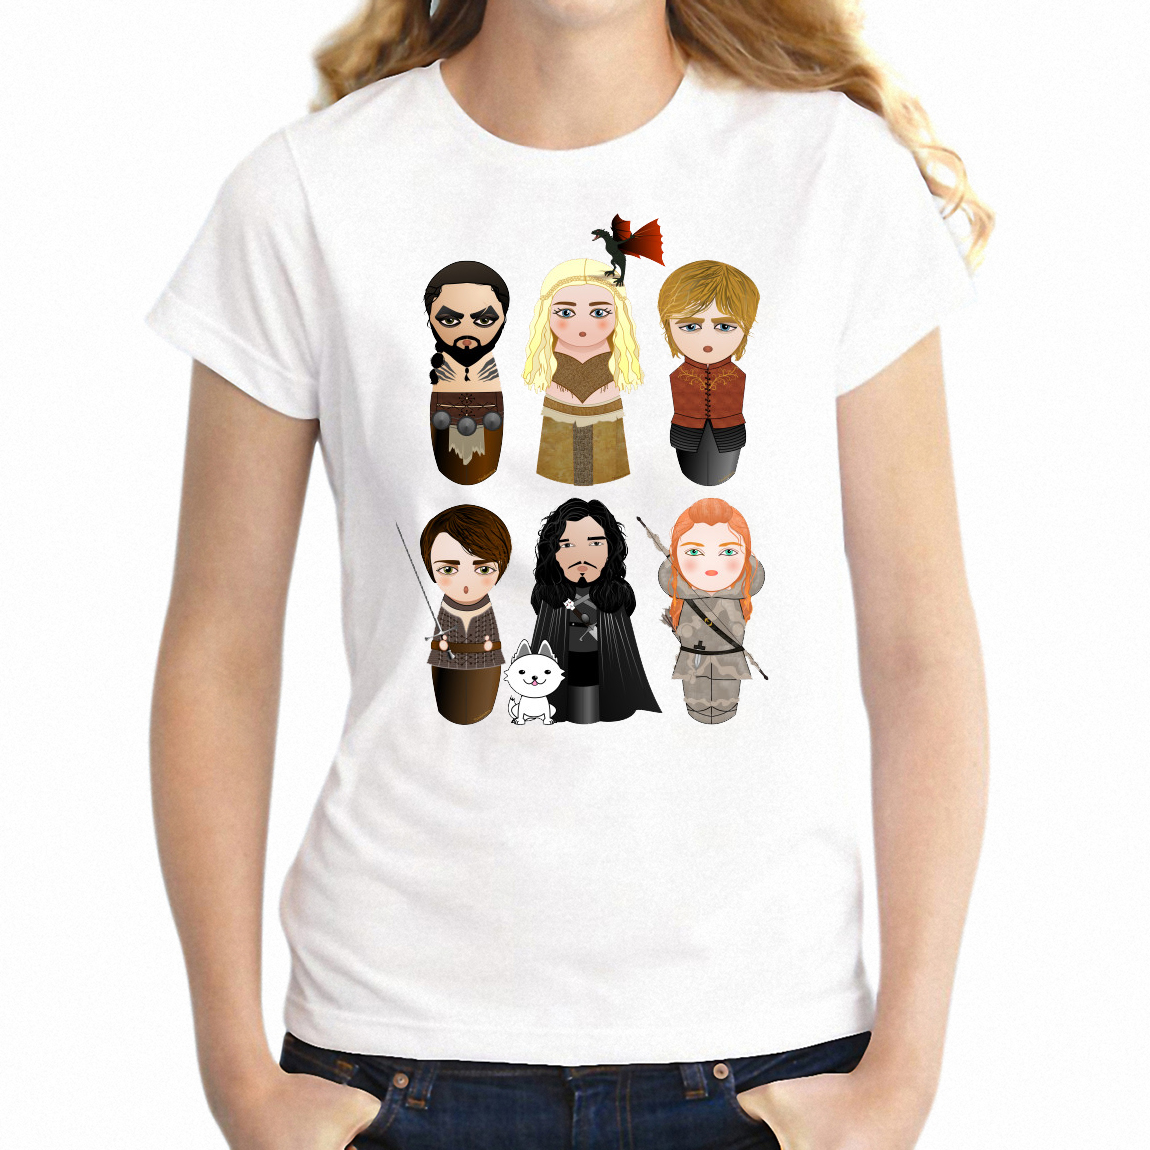 2019 Fashion Women's T Shirt Cute Kokeshi Game Of Thrones Arya Jon Snow Daenerys Girl's Tee